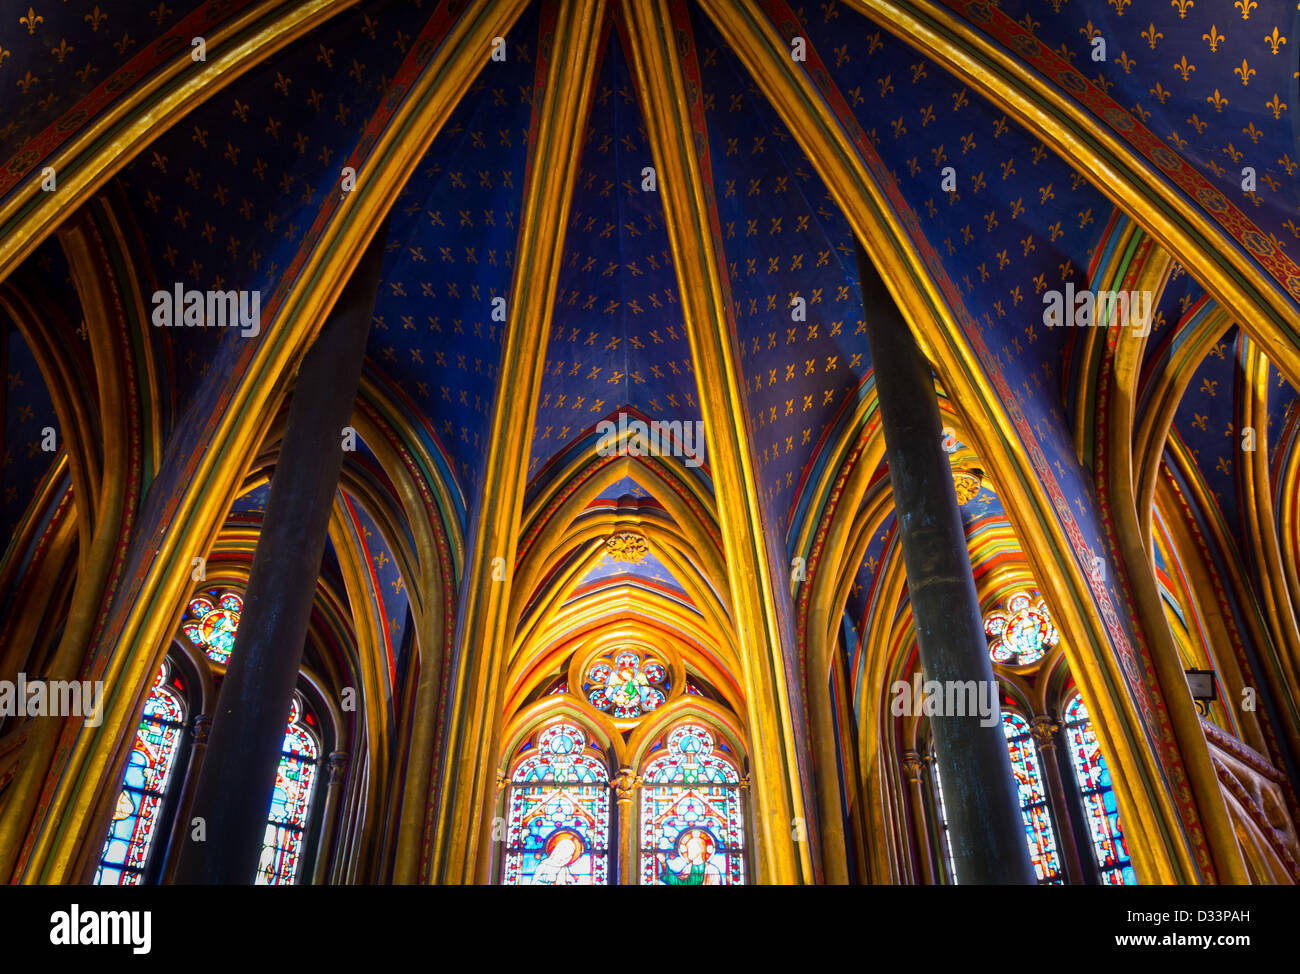 Celing of the lower level of the Saint Chapelle chapel in Paris, France - Stock Image